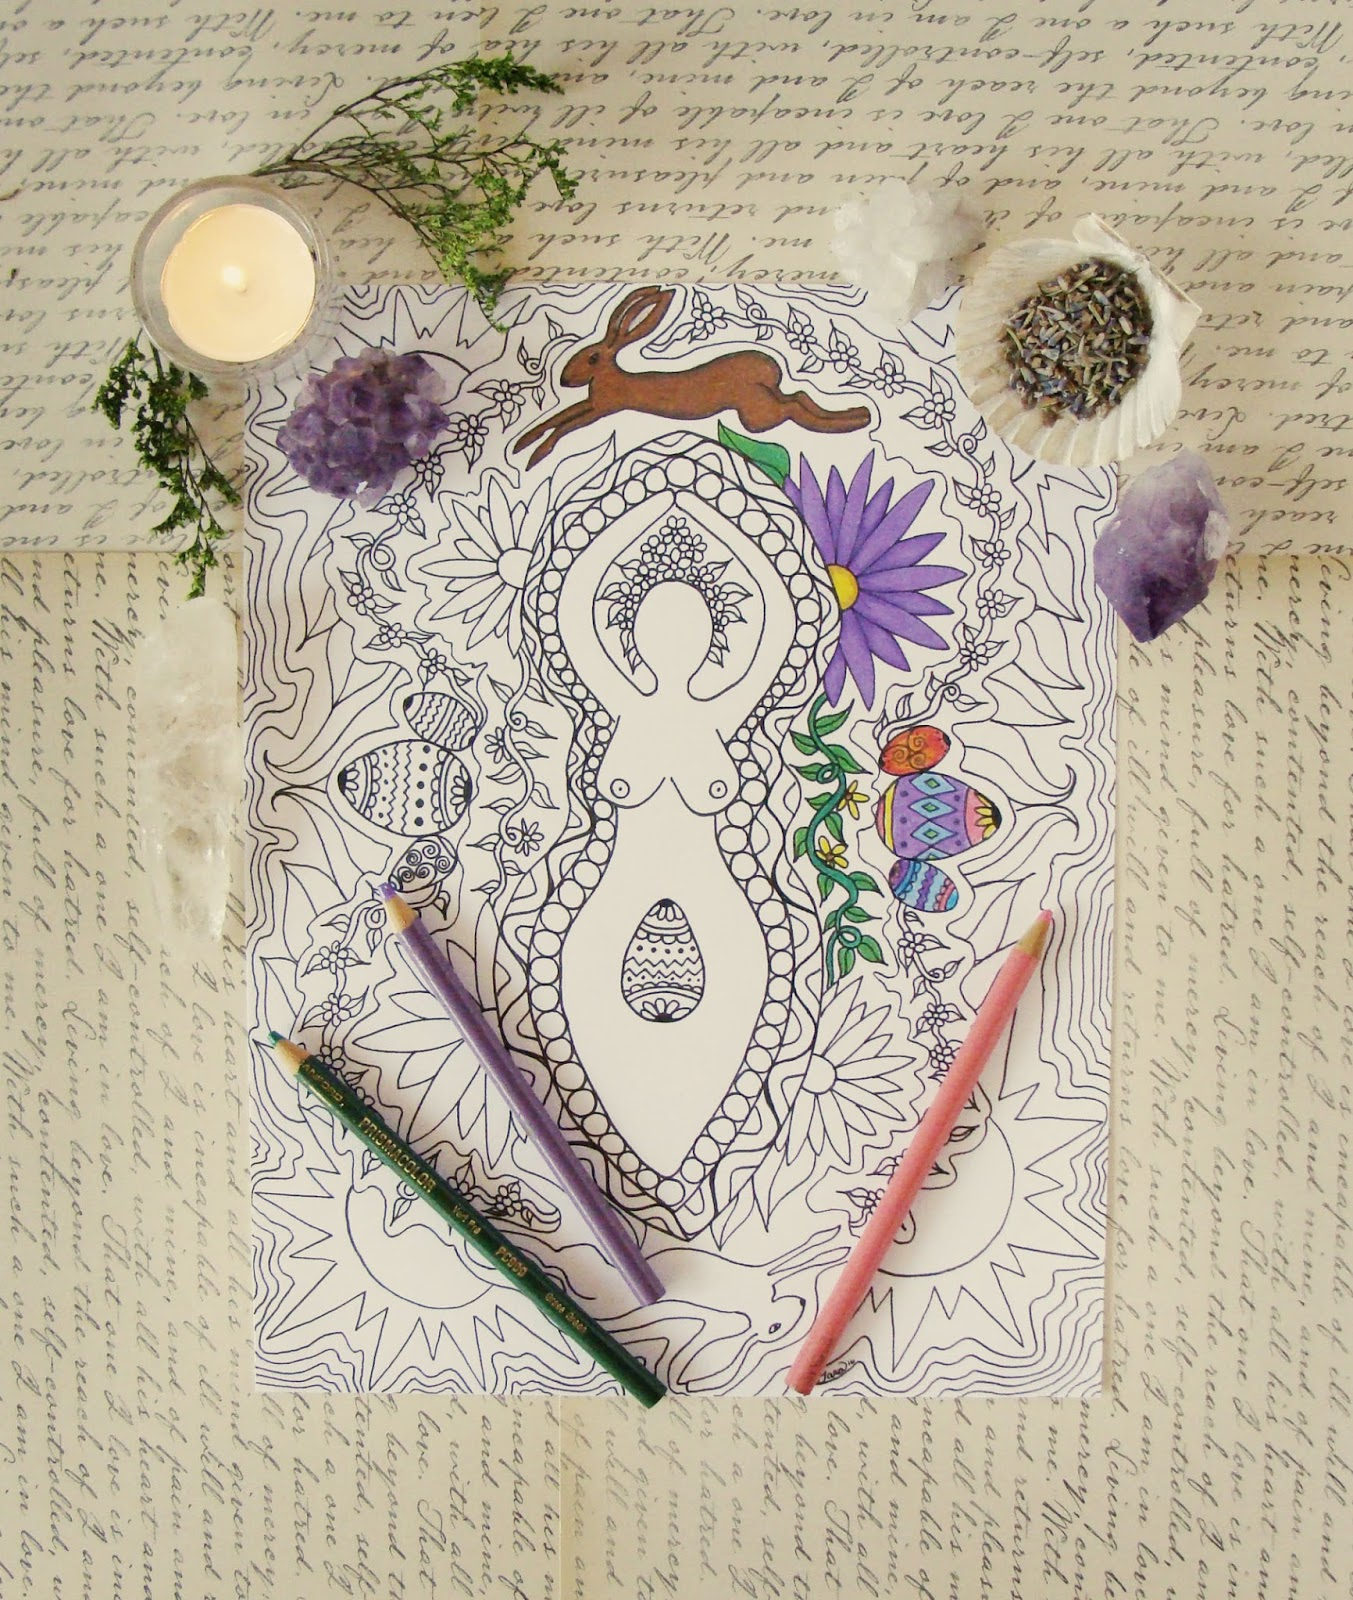 Since Ostara Is Right Around The Corner I Decided To Have A Giveaway For My Spring Goddess Mandala Coloring Page